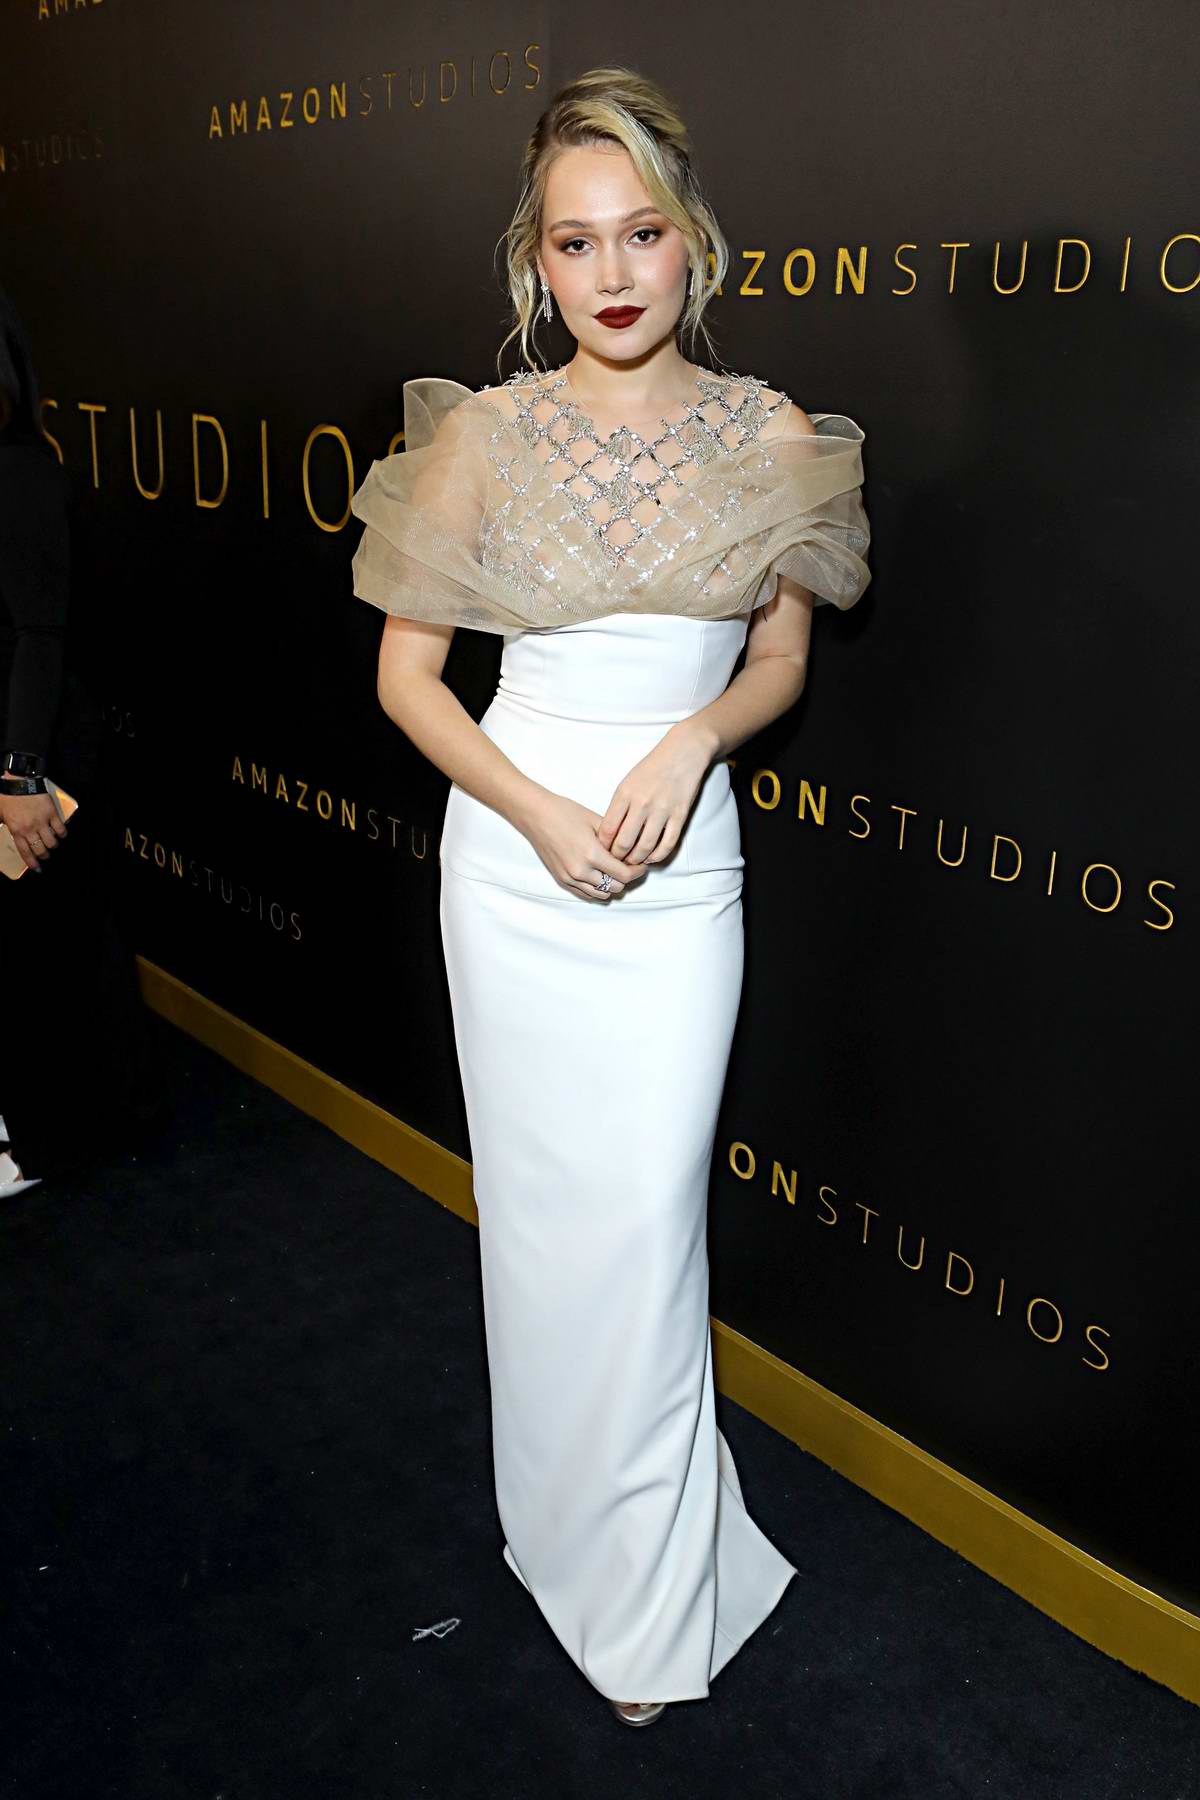 Kelli Berglund attends Amazon Studios Golden Globes After-Party at The Beverly Hilton Hotel in Beverly Hills, California